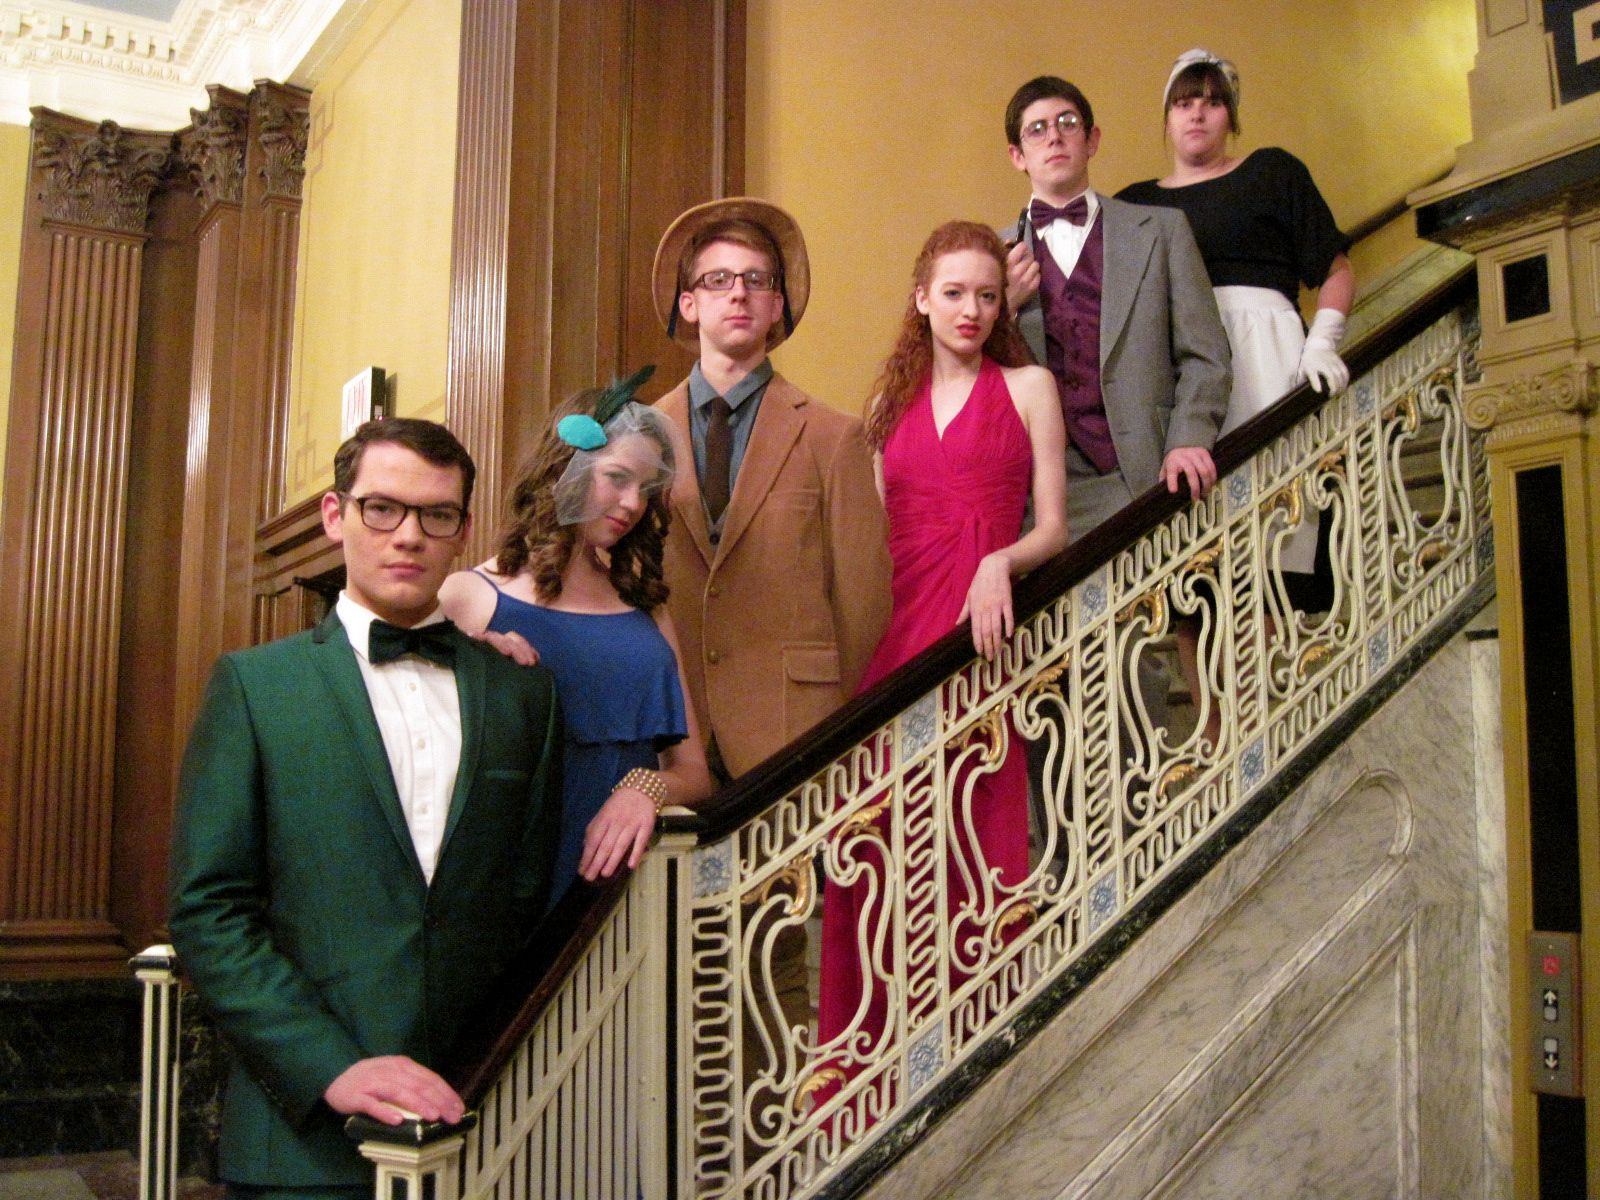 halloween group costume: clue characters i've always wanted to do